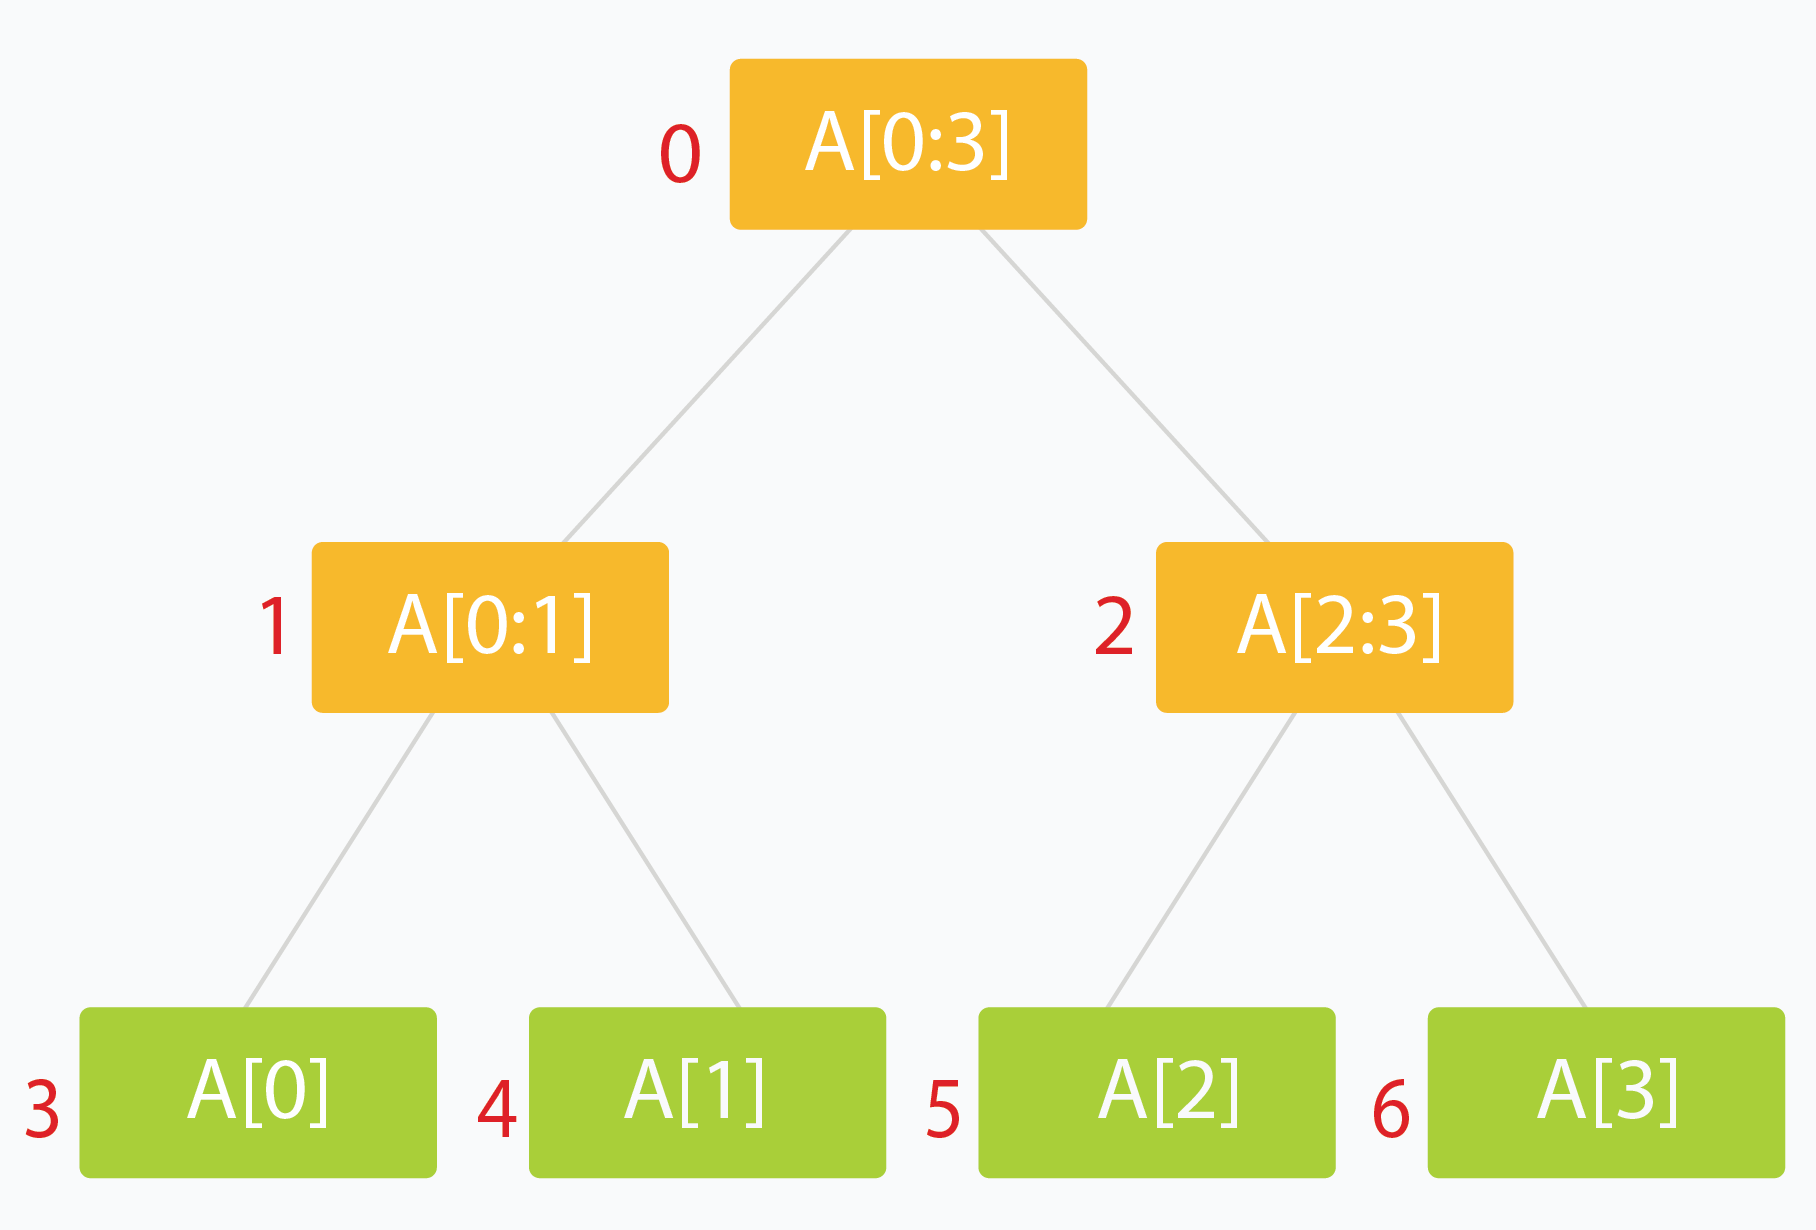 A typical Segment Tree